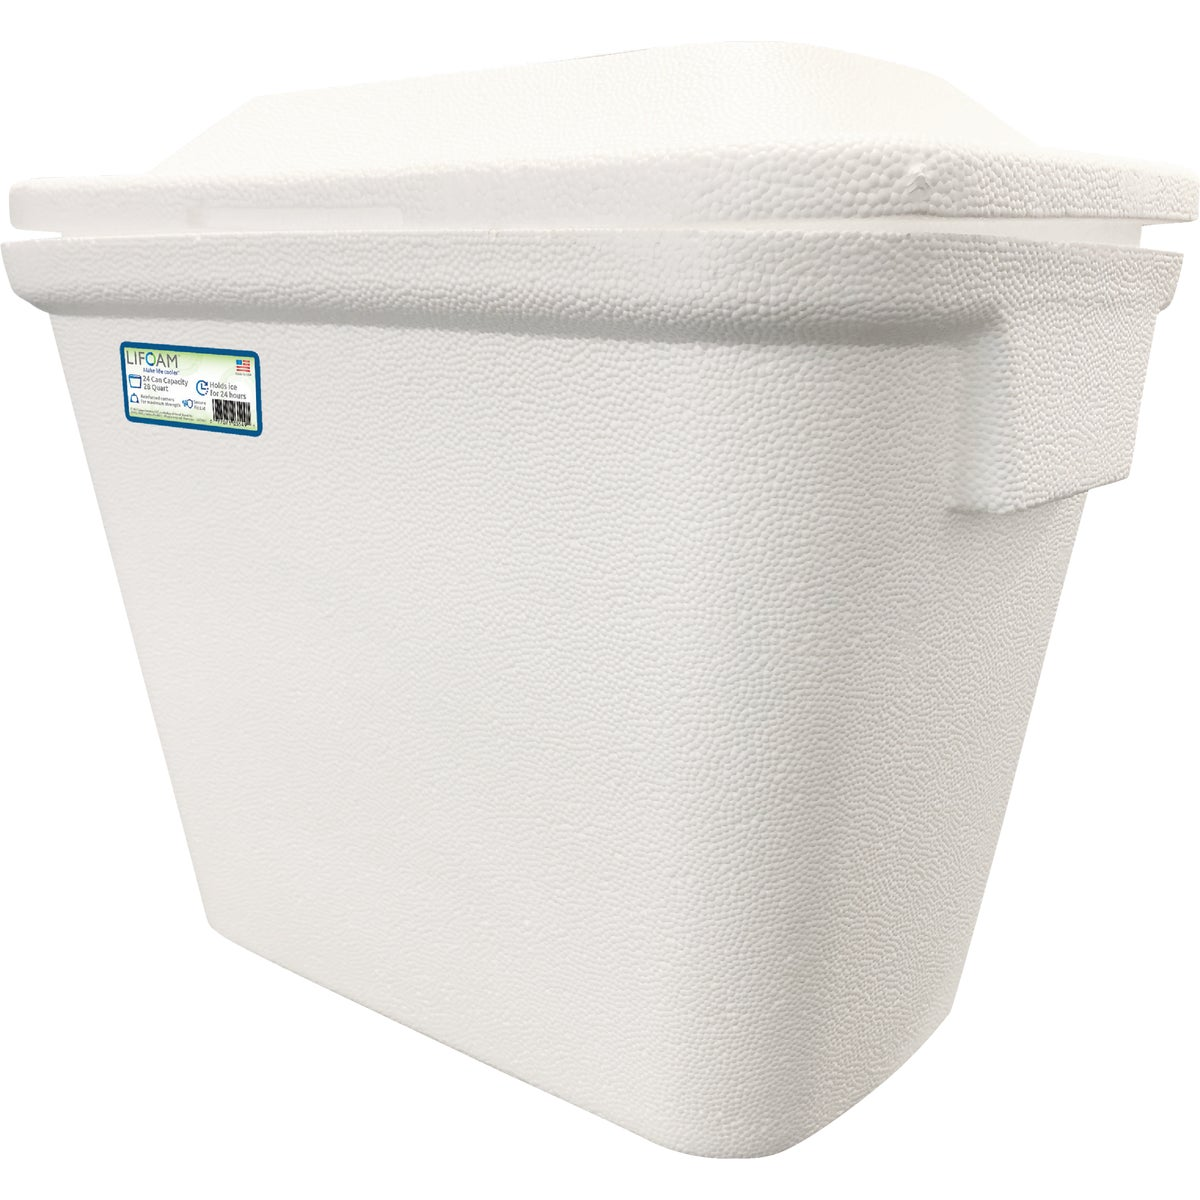 30QT FOAM COOLER